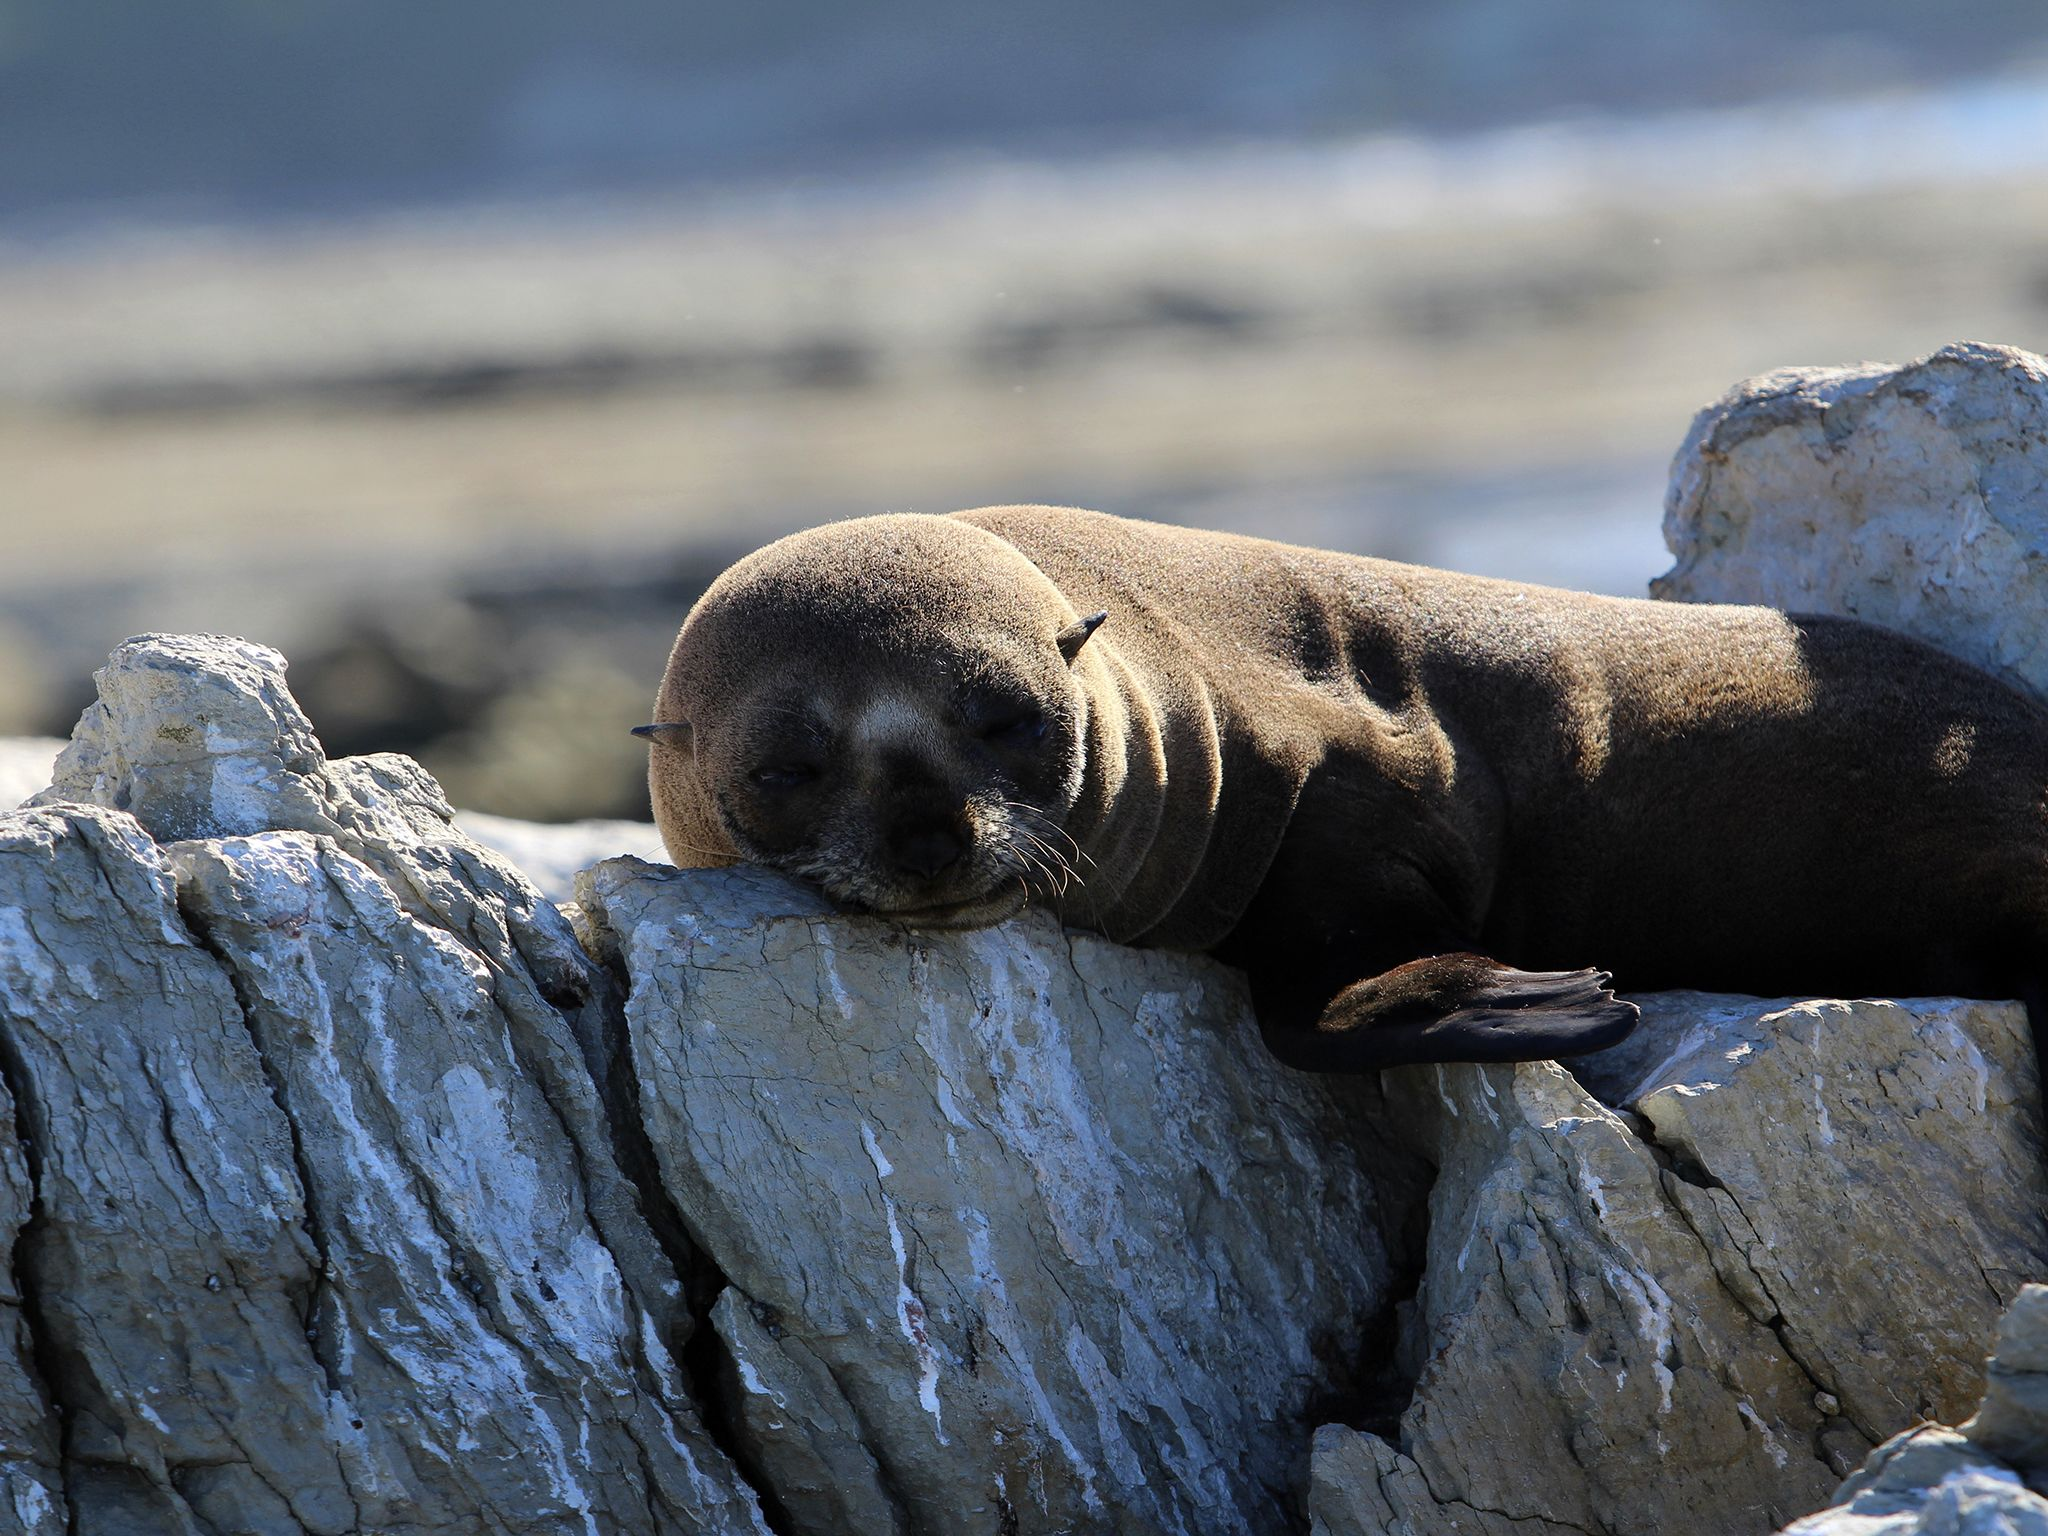 Young fur seal pup resting on a coastal rock formation on the beaches of Kaikoura, New Zealand,... [Photo of the day - مارس 2015]